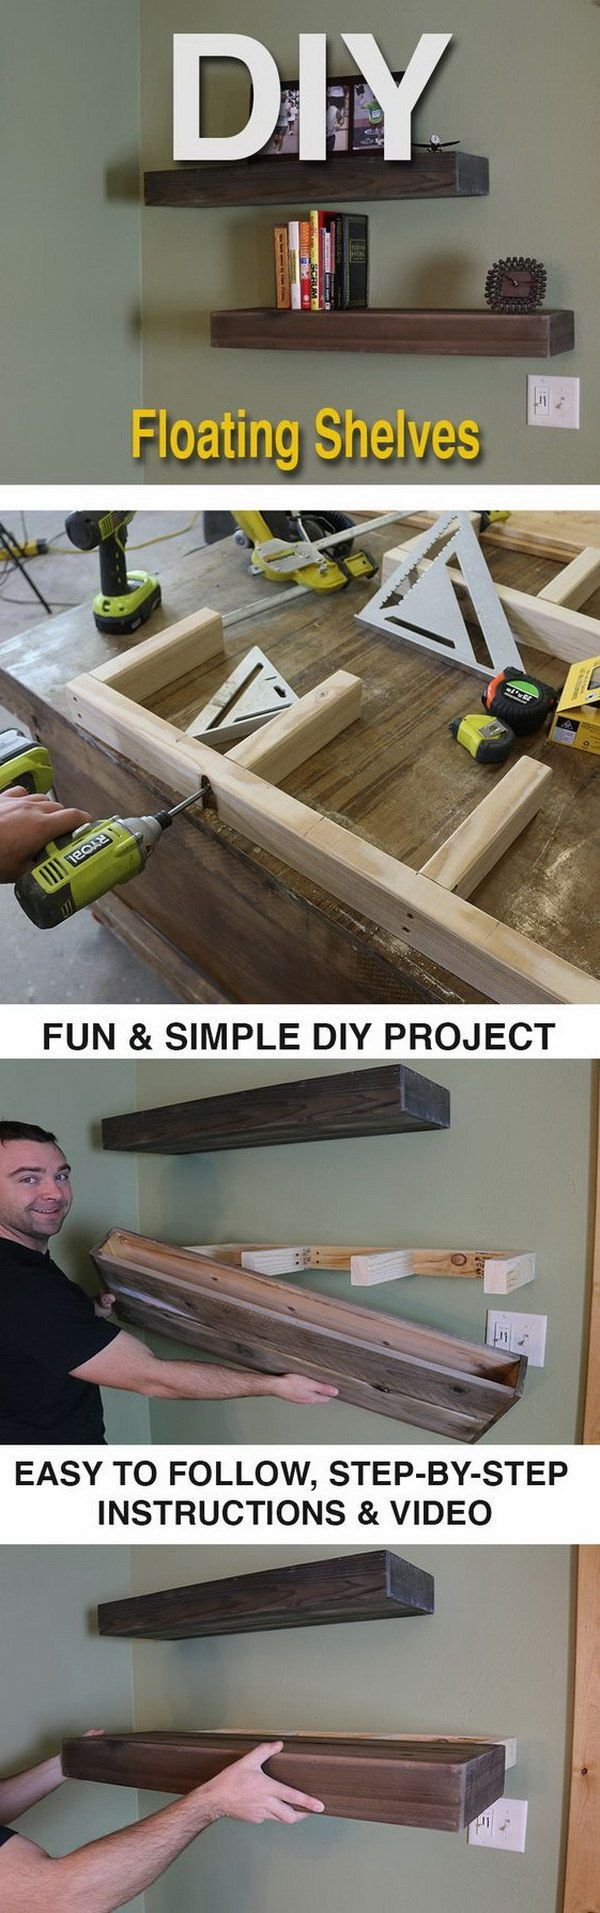 28. Floating shelf tutorial